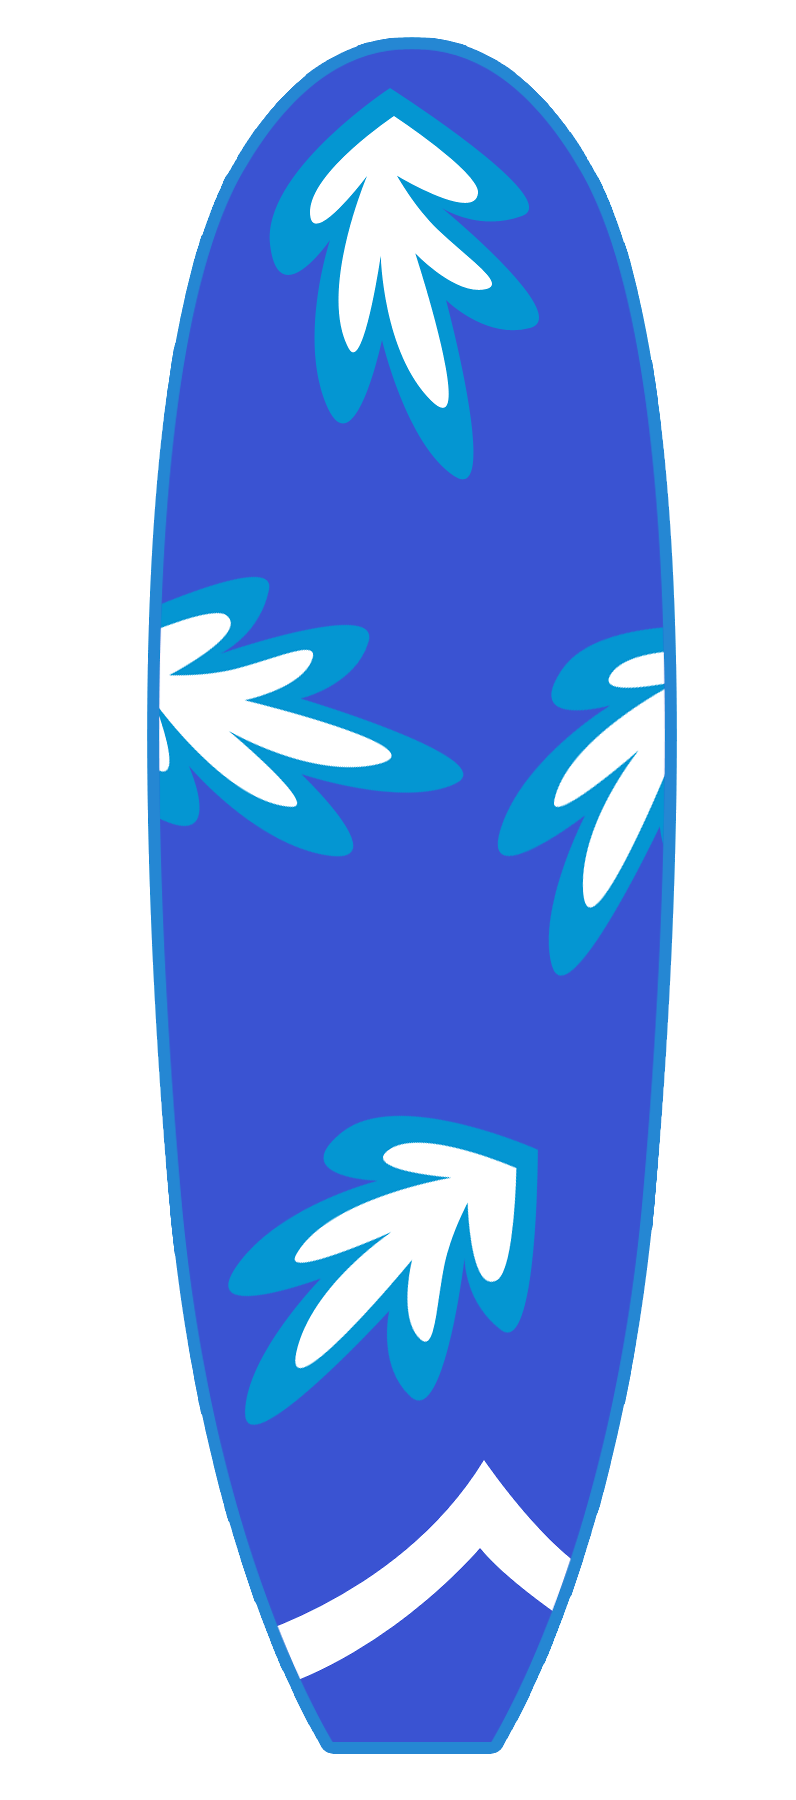 Waves clipart surfboard. Minus say hello images